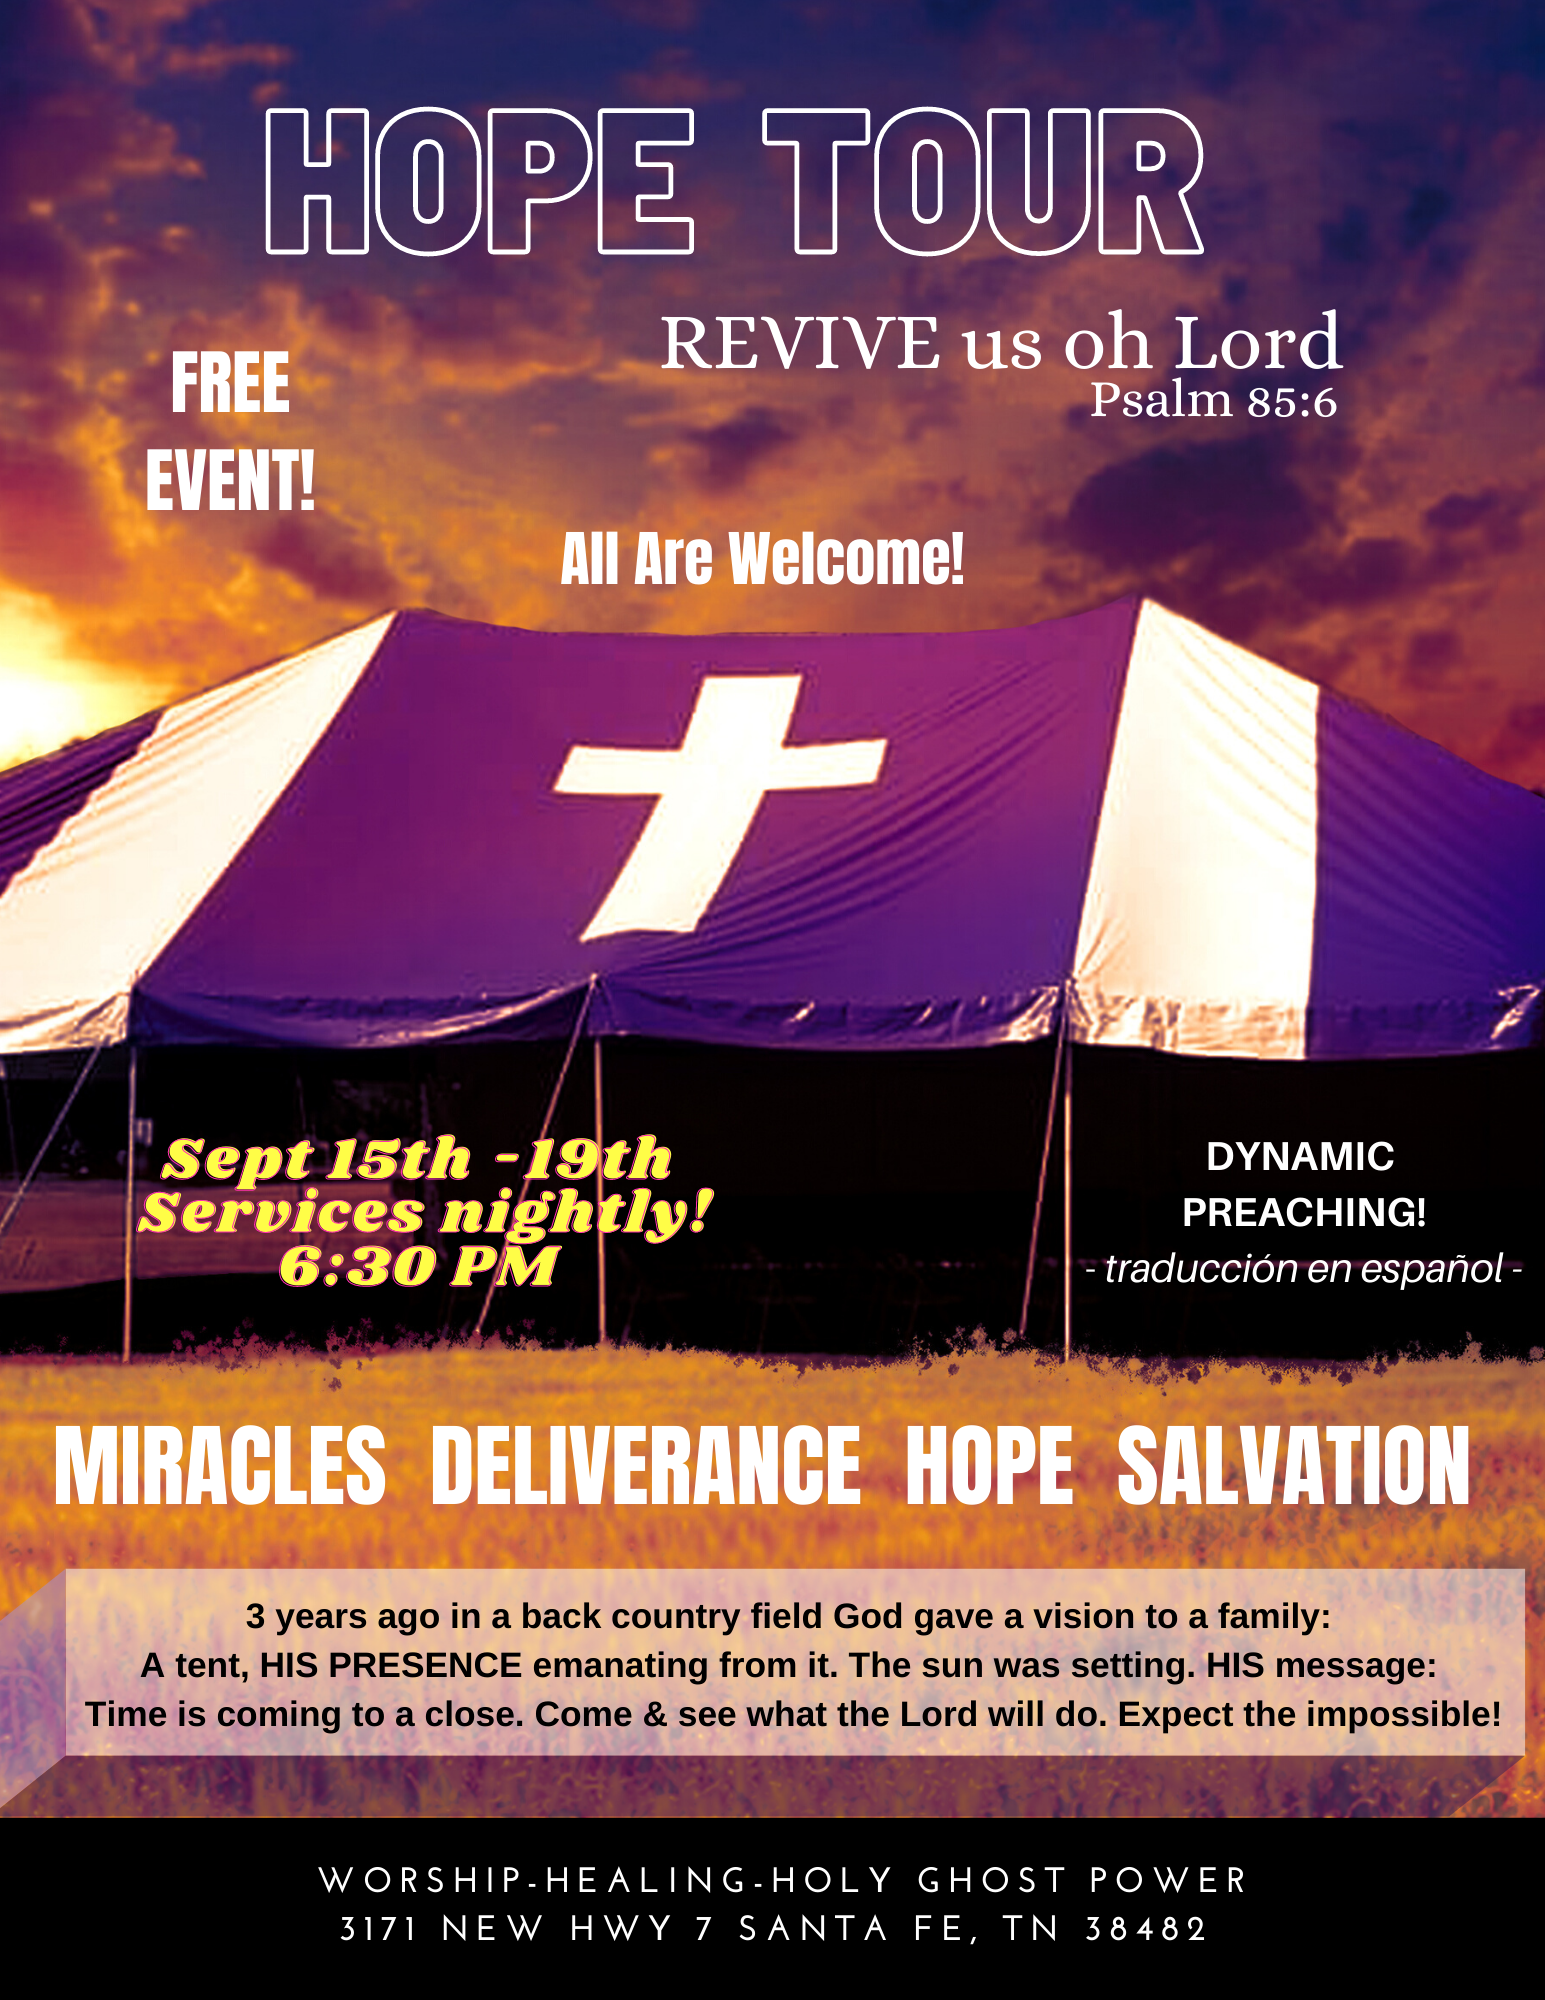 Hope Tour Revival In Tennessee